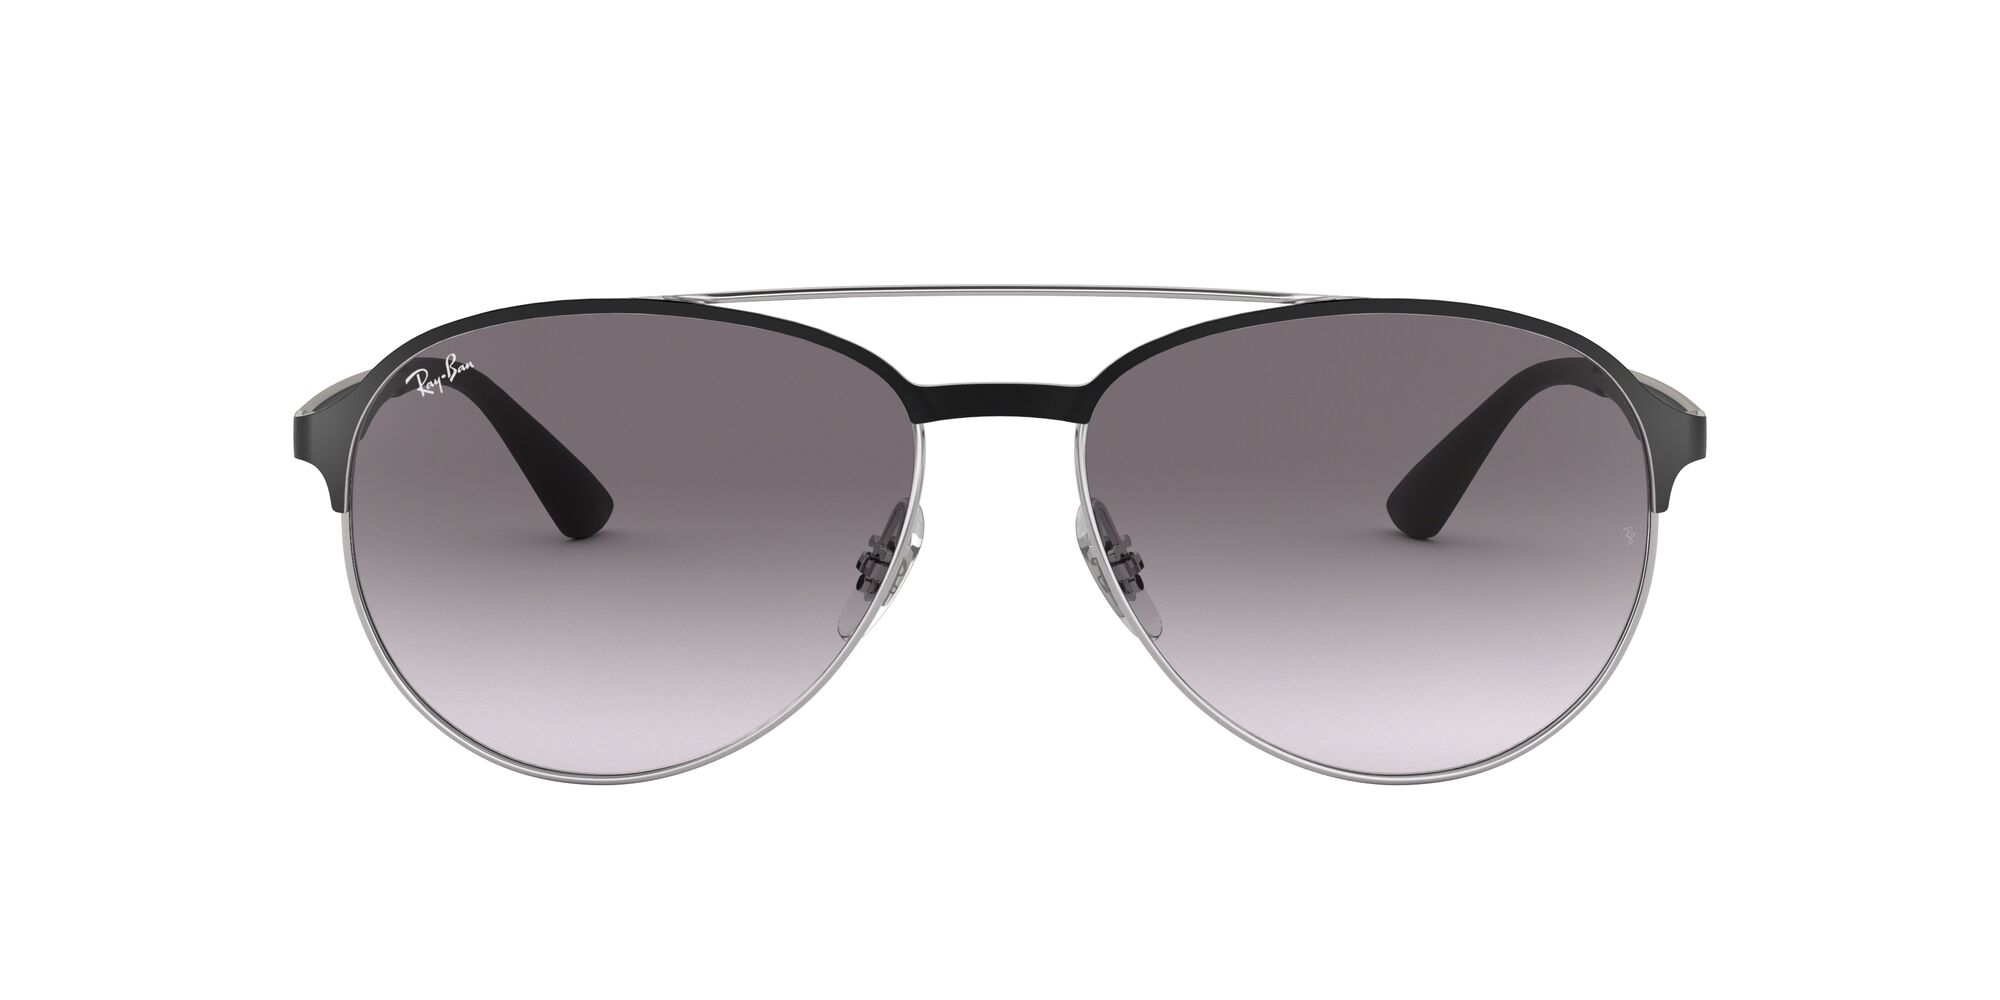 Front Ray-Ban Ray-Ban 0RB3606 90918G 59/16 Zilver/Grijs